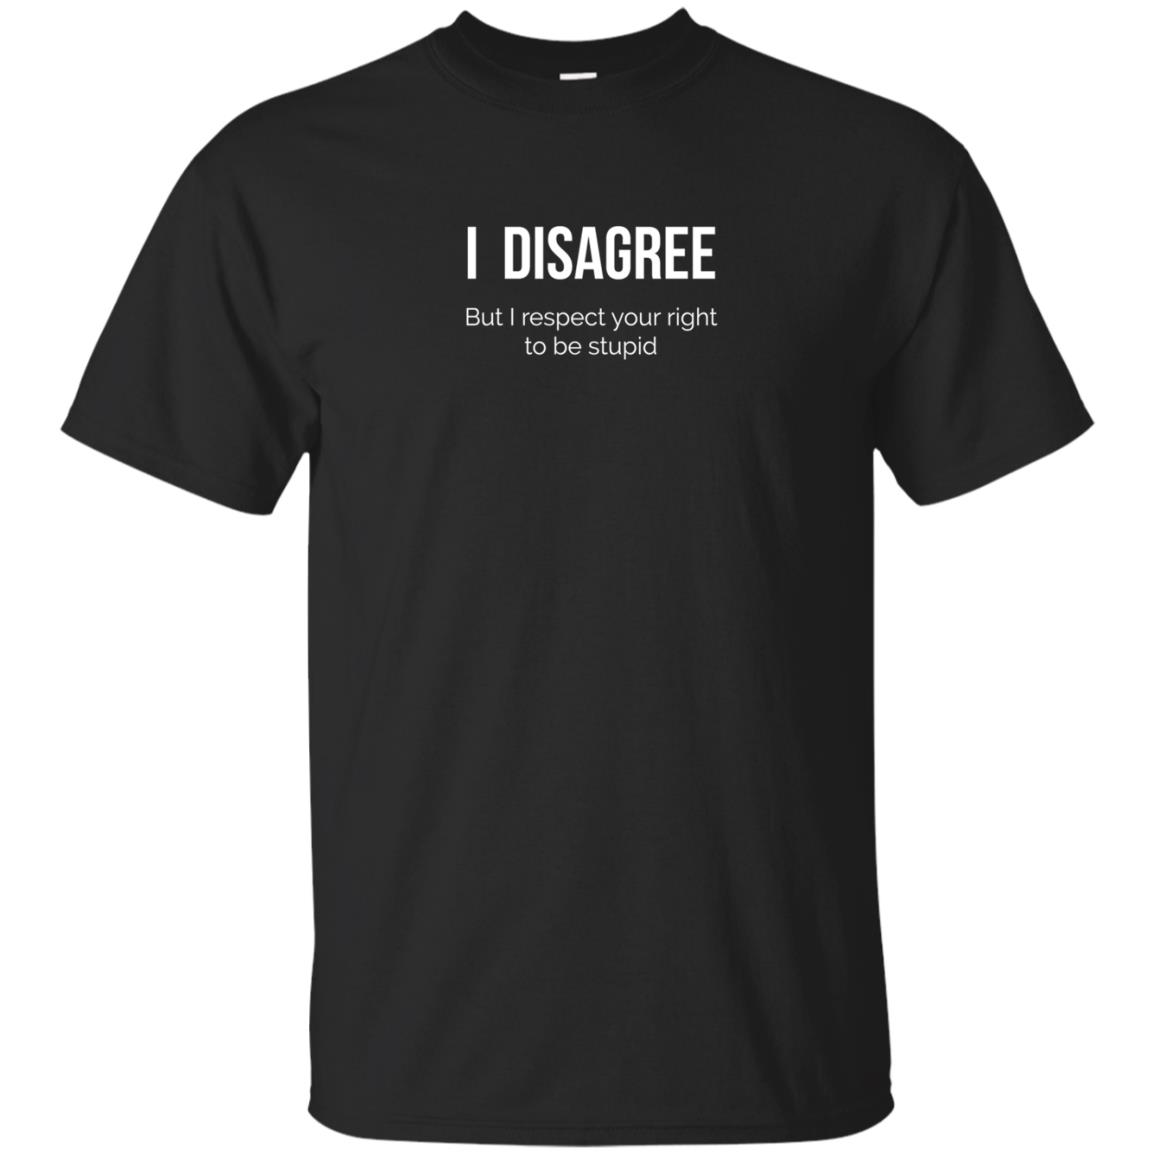 image 2202 - I Disagree But I Respect Your Right To Be Stupid shirt